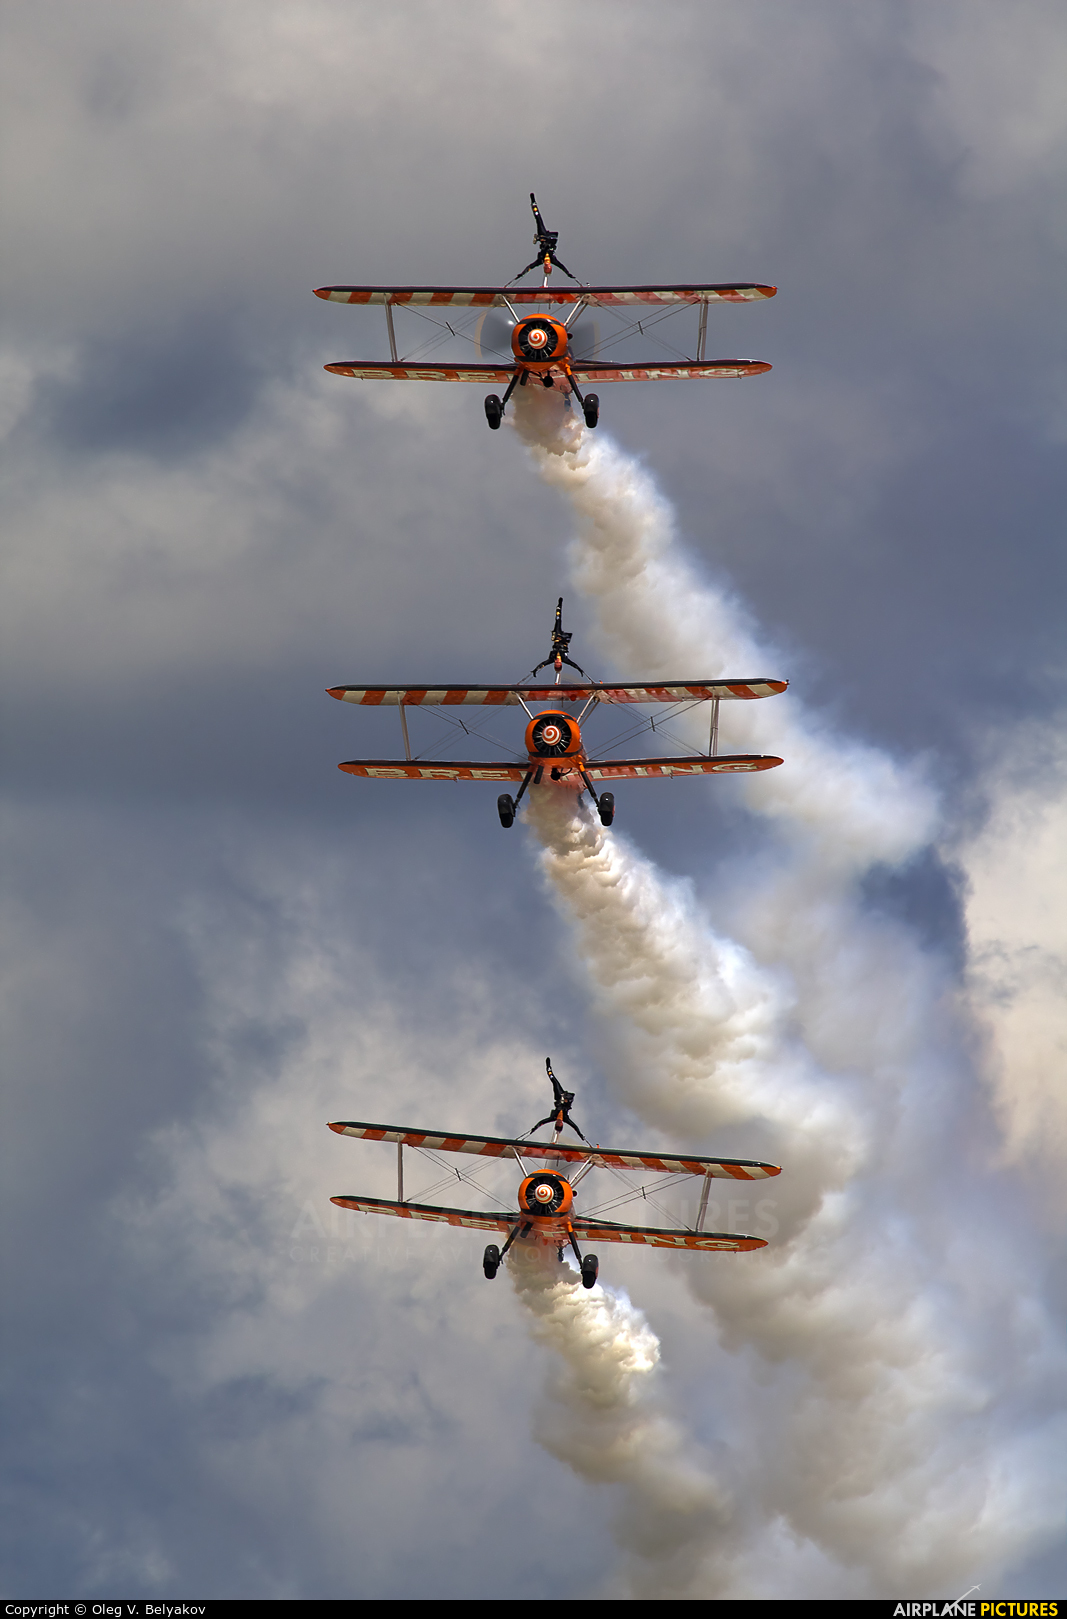 Breitling Wingwalkers N74189 aircraft at Fairford